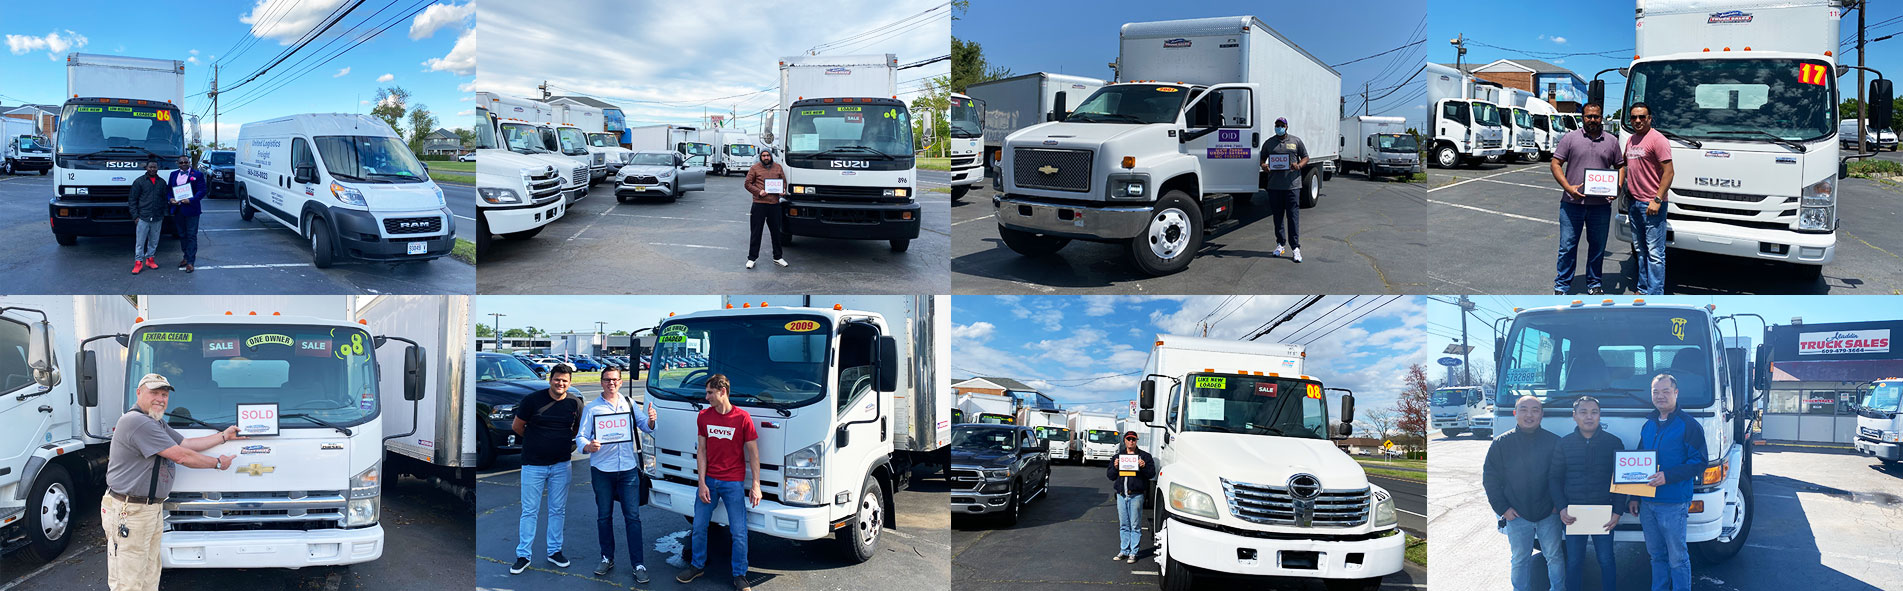 Used trucks for sale in Burlington | Aladdin Truck Sales. Burlington NJ